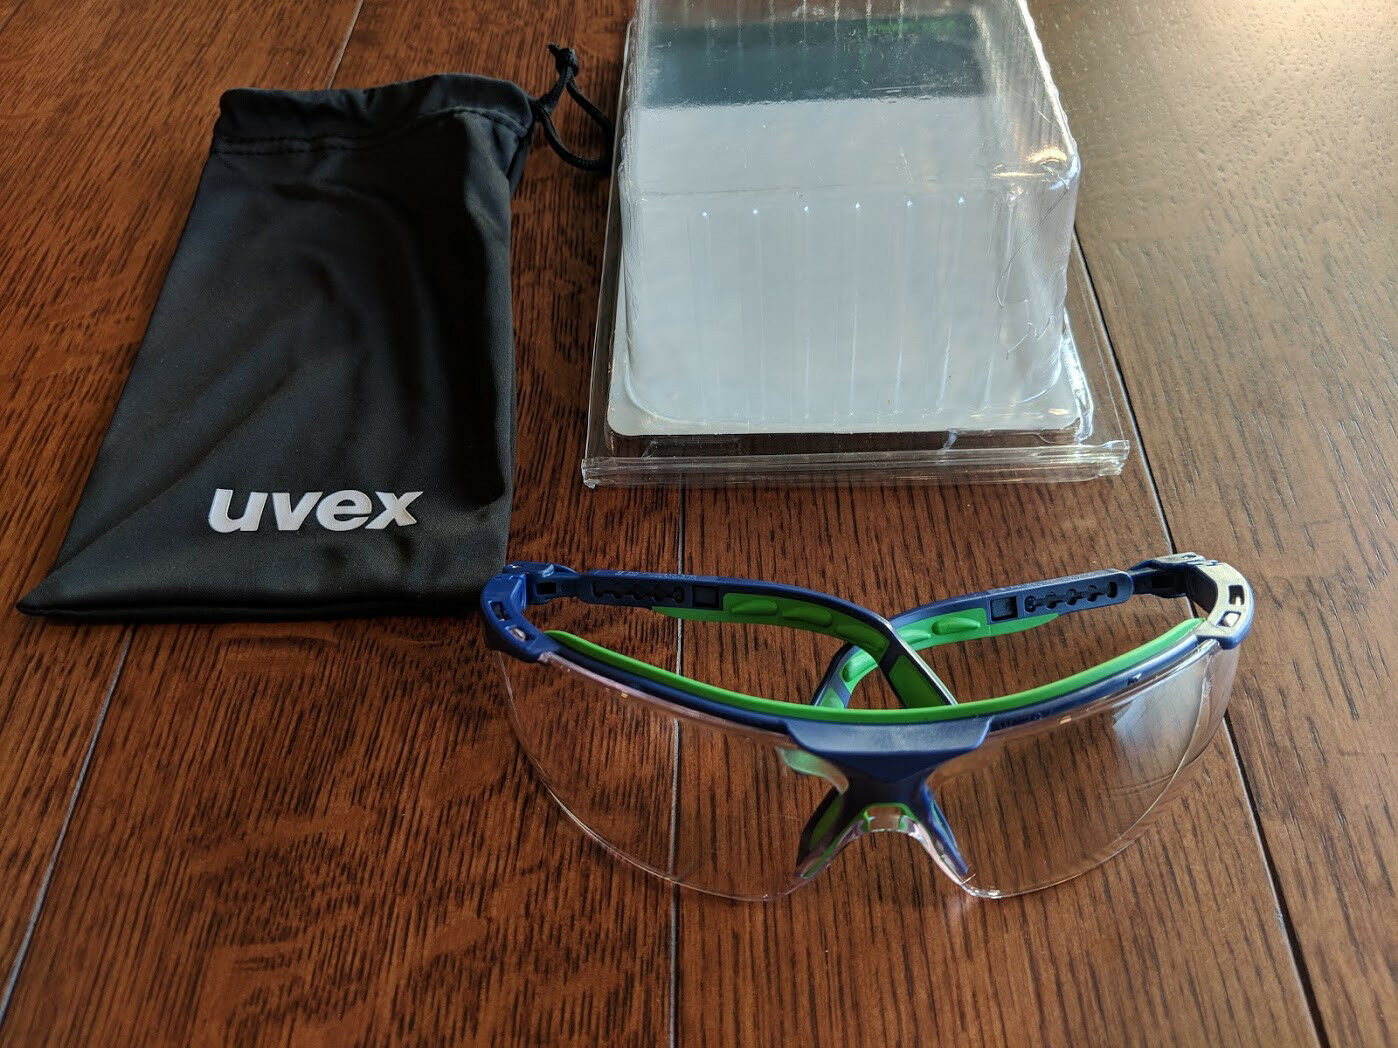 Festool Googles   Glasses by UVEX   Specs   Goggles   Eye Protection   500119